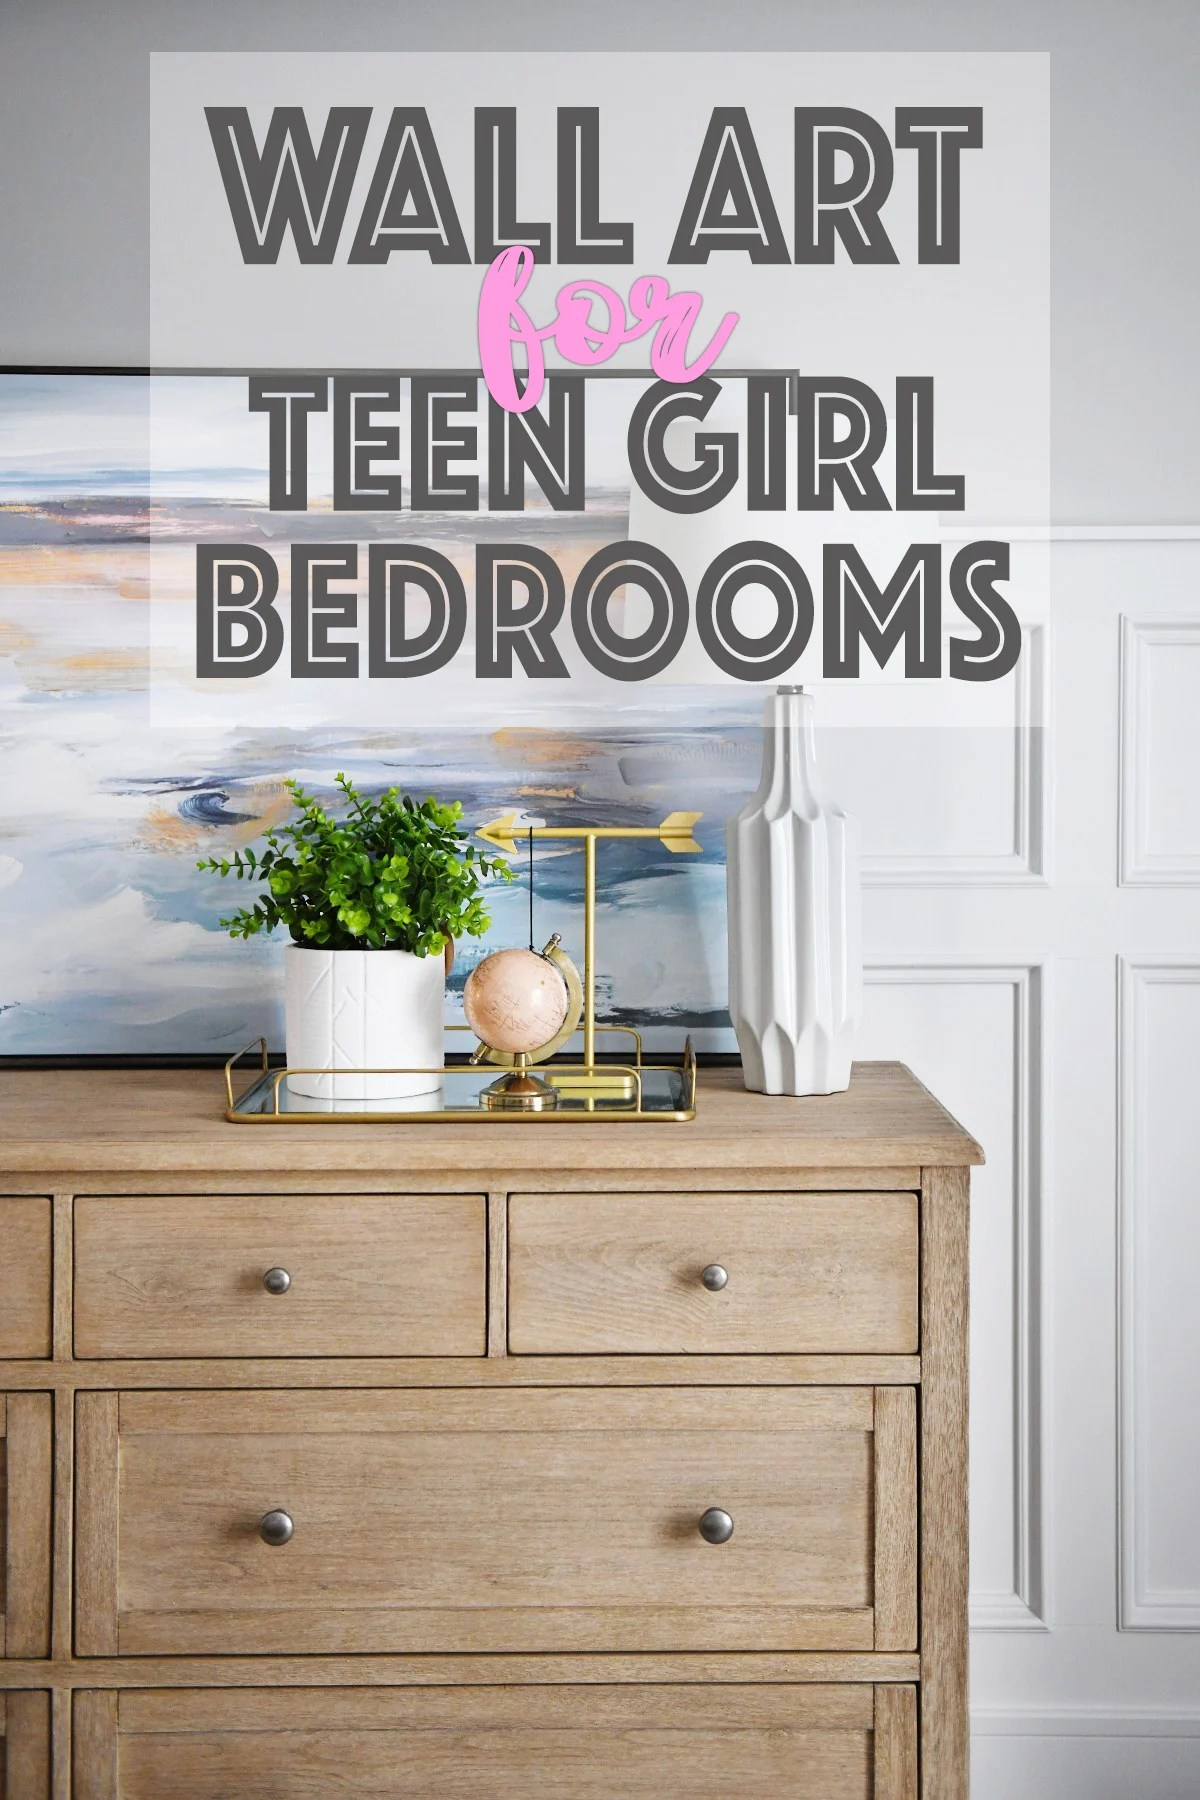 Wall art for teen girl bedrooms